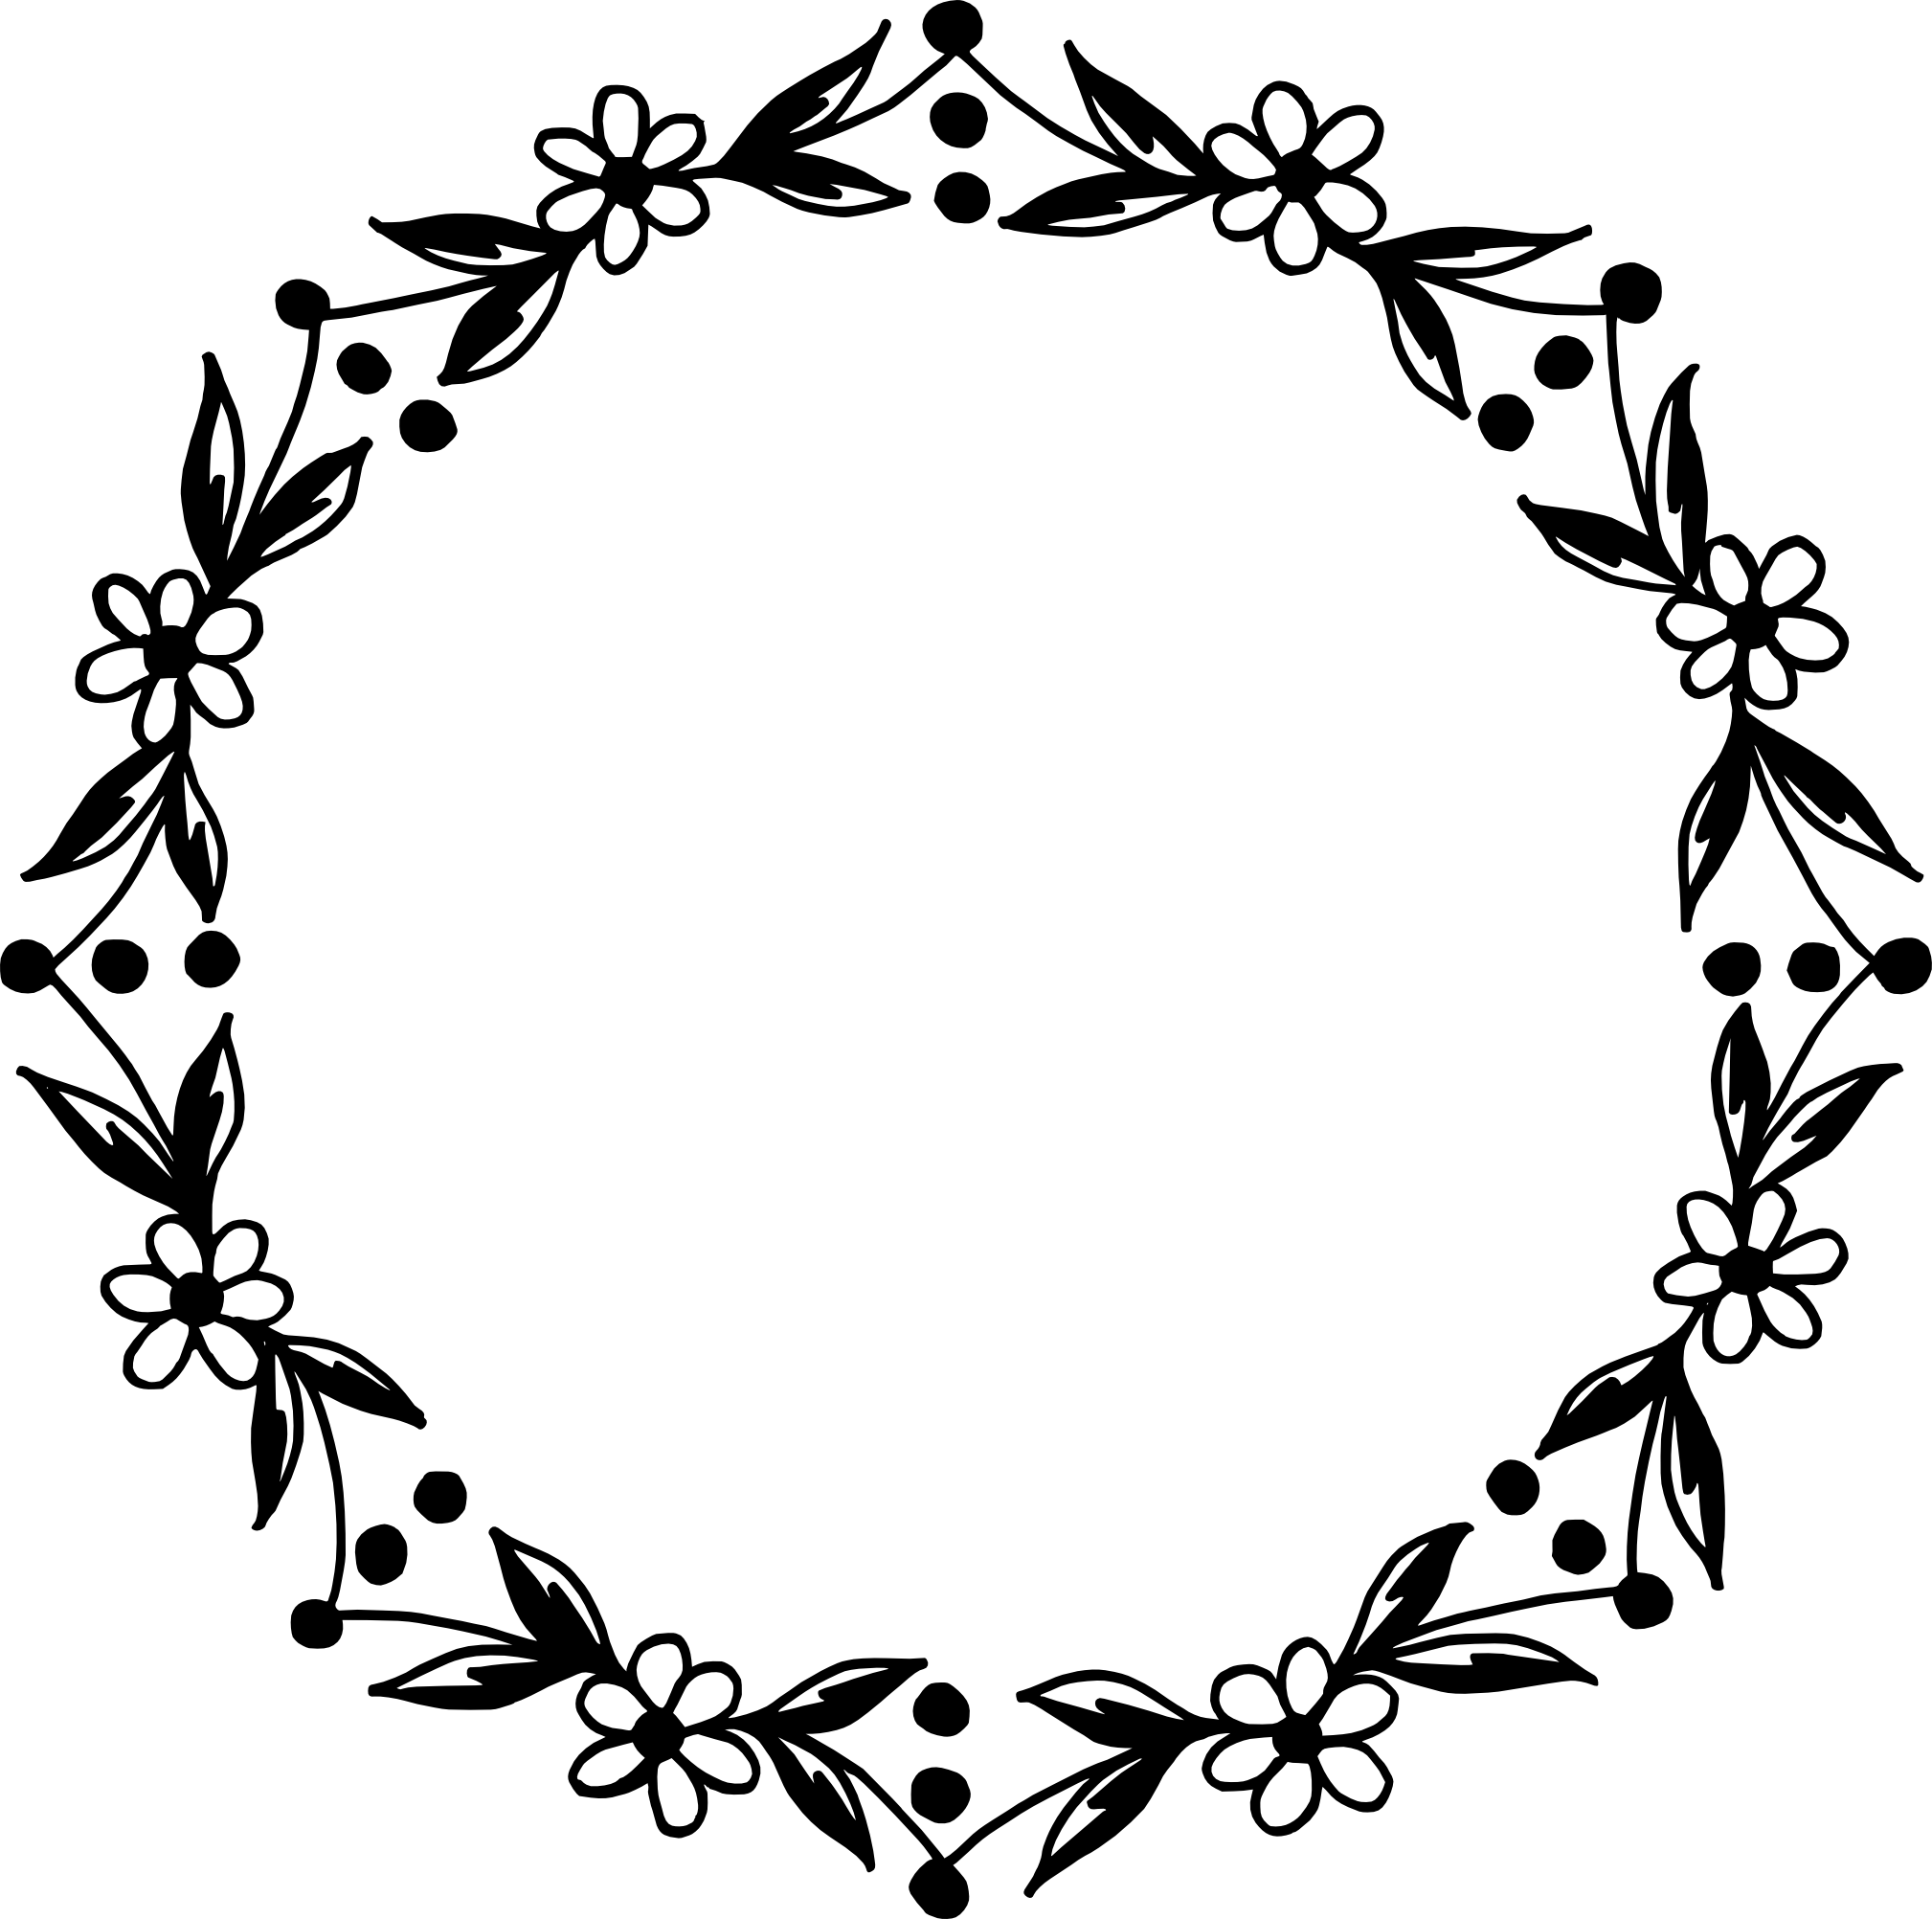 10 Circle Floral Frame Vector (PNG Transparent, SVG.